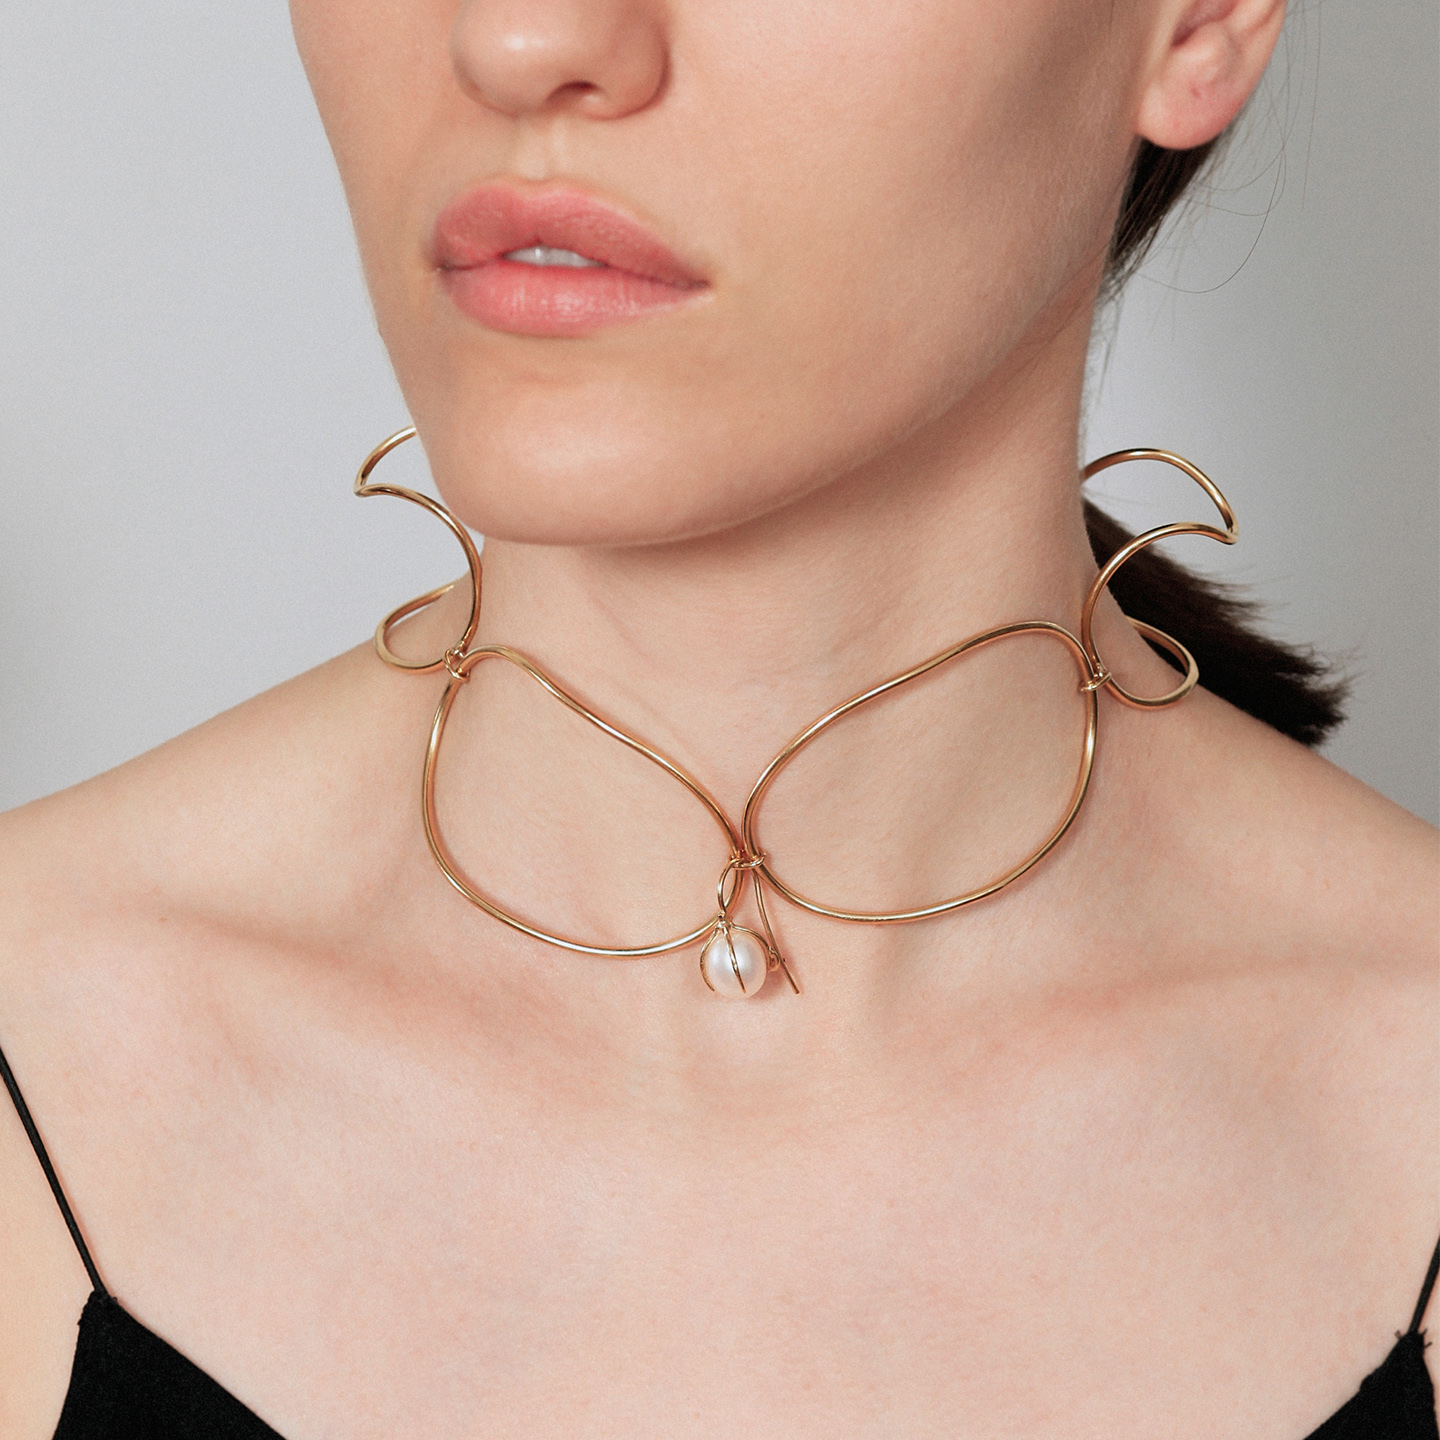 Original gold choker with a pearl